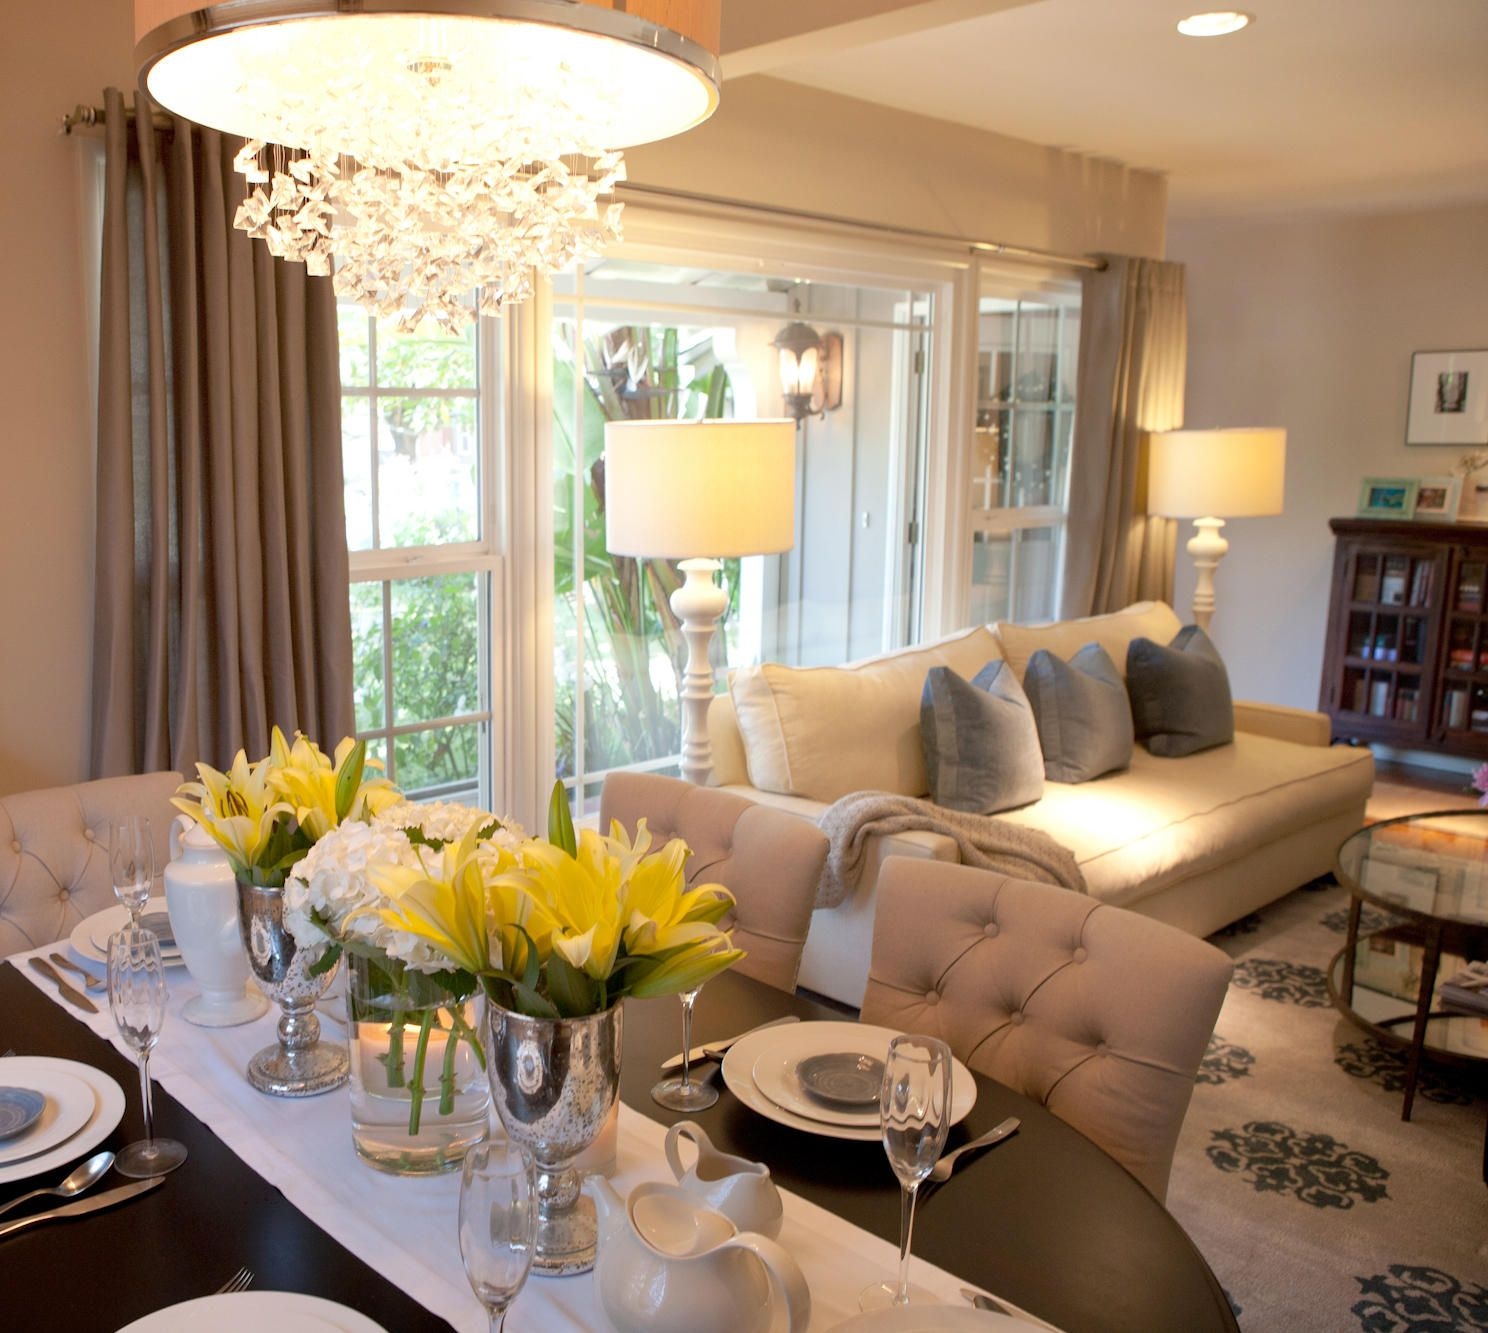 Living And Dining Room Combo: Pin By Vanessa Kaliwo On First Home